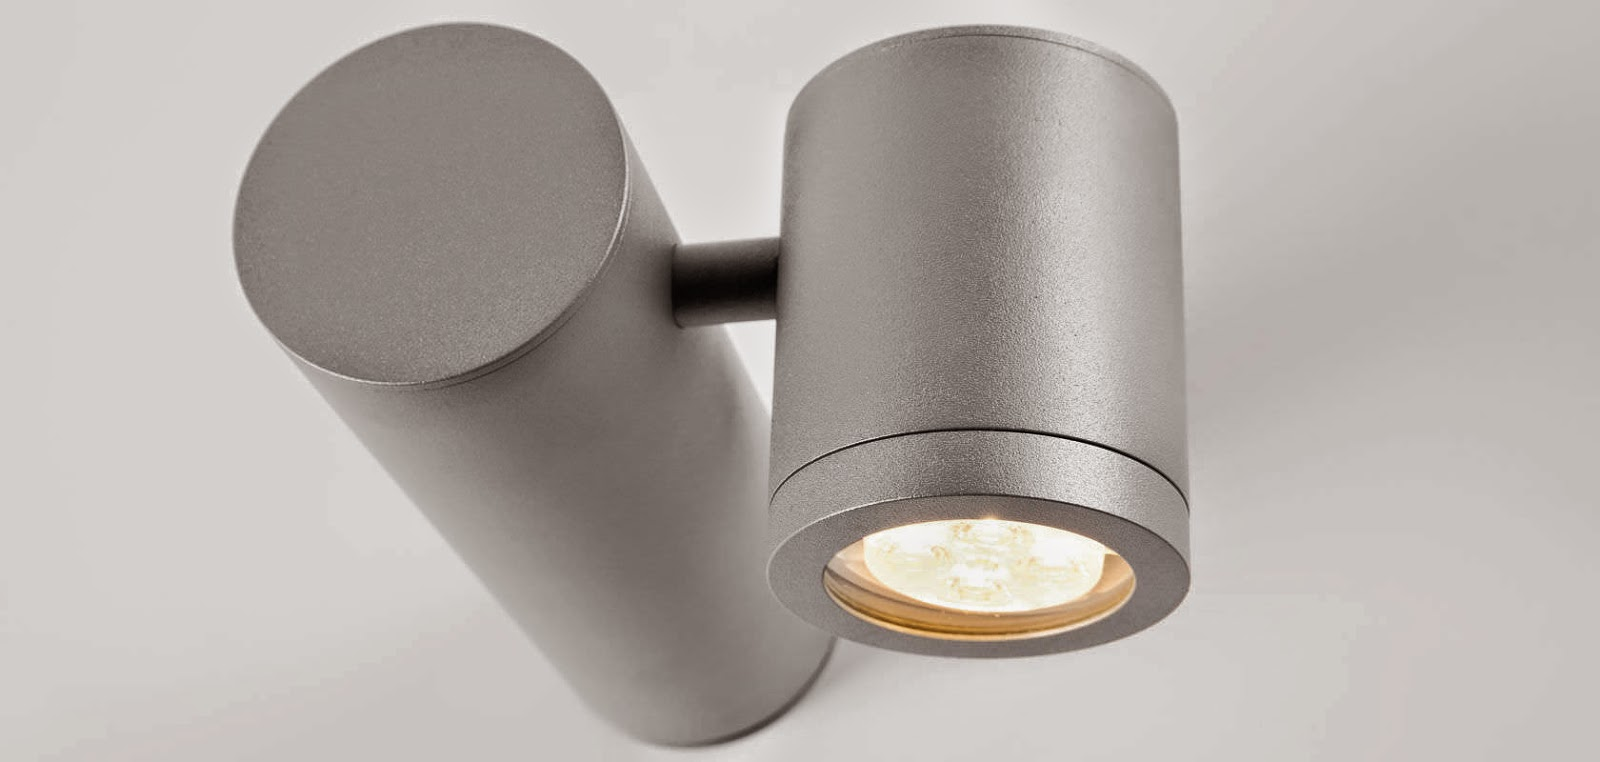 f85e7ae5d37 They can produce white light in two ways  one is to use particular  phosphors inside the LEDs ...